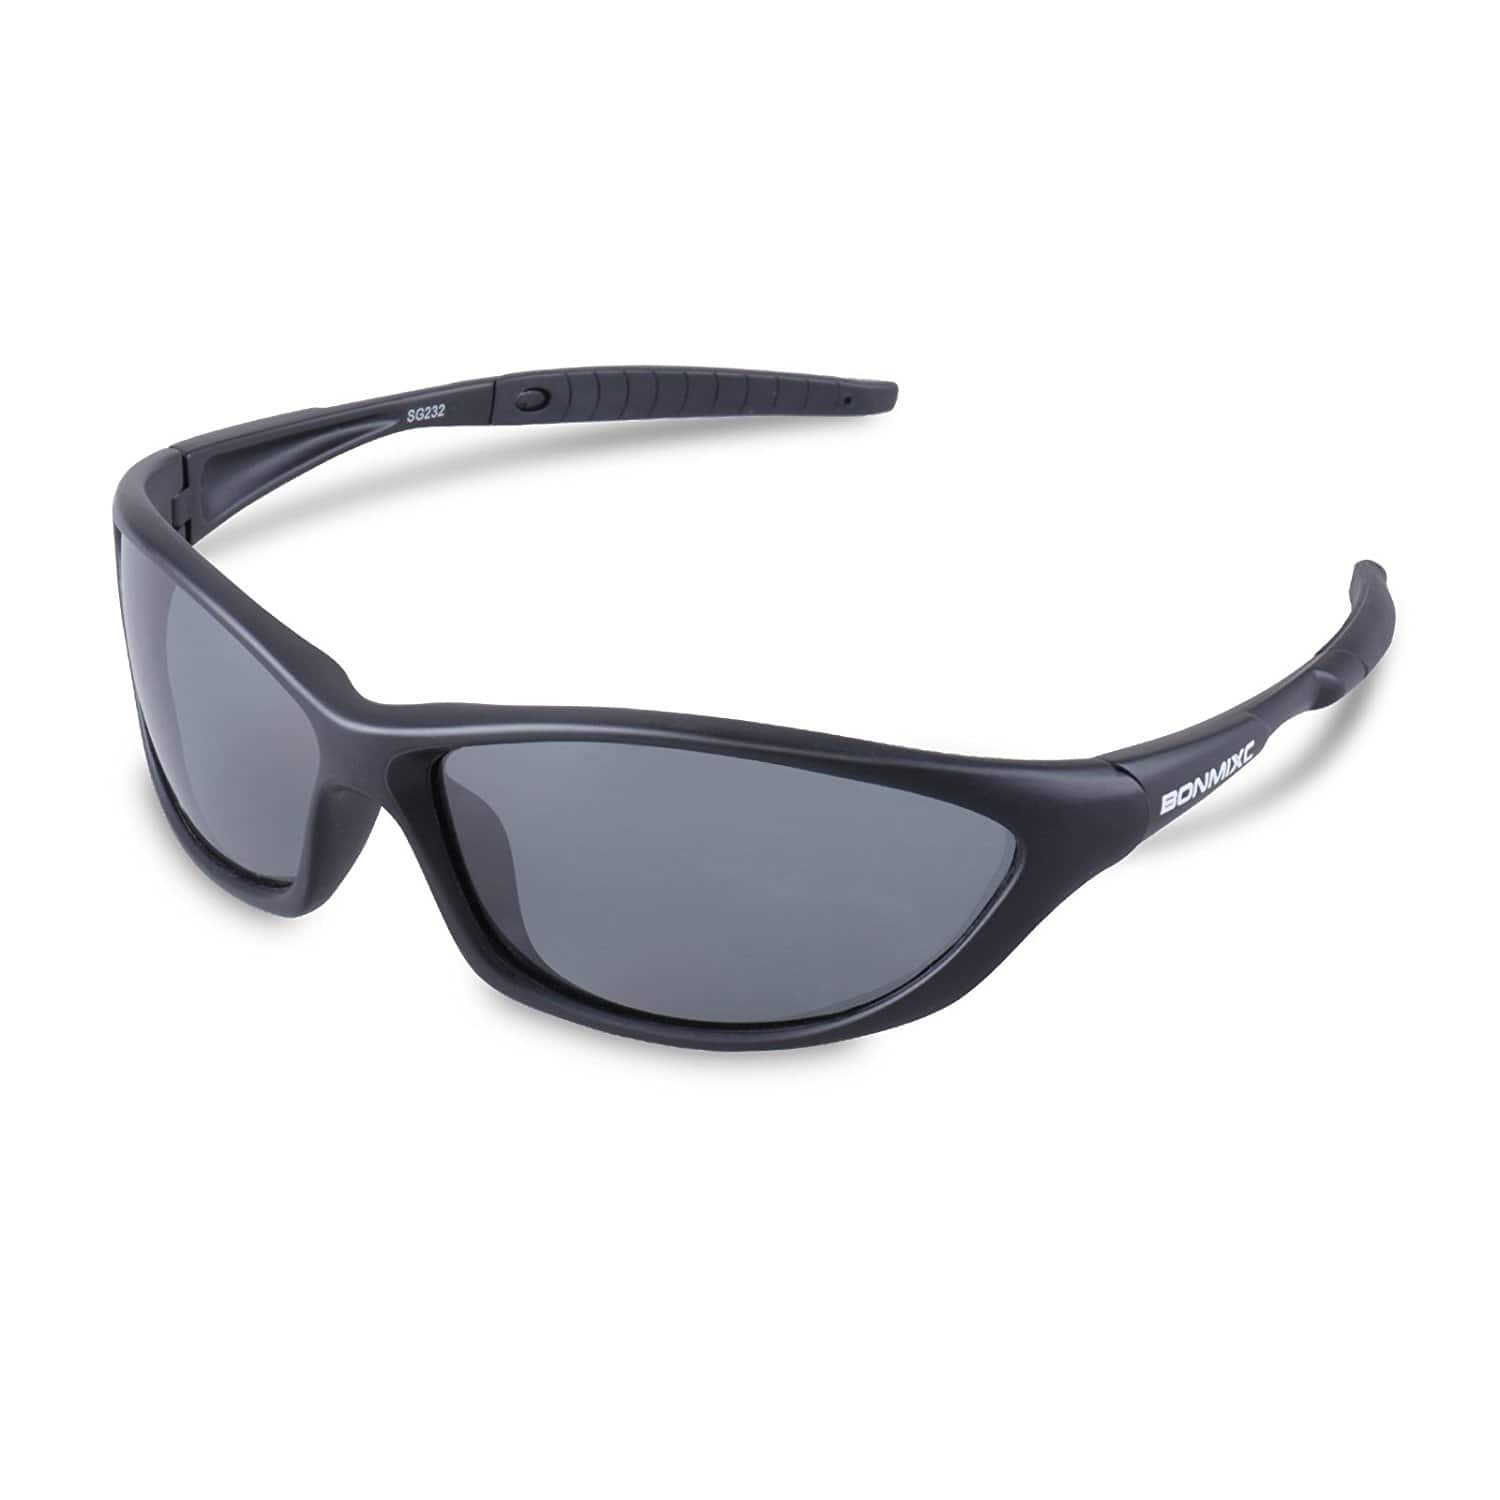 Bonmixc unisex Polarized Sunglasses for Driving Riding Sports Outdoor Golf for $12.99